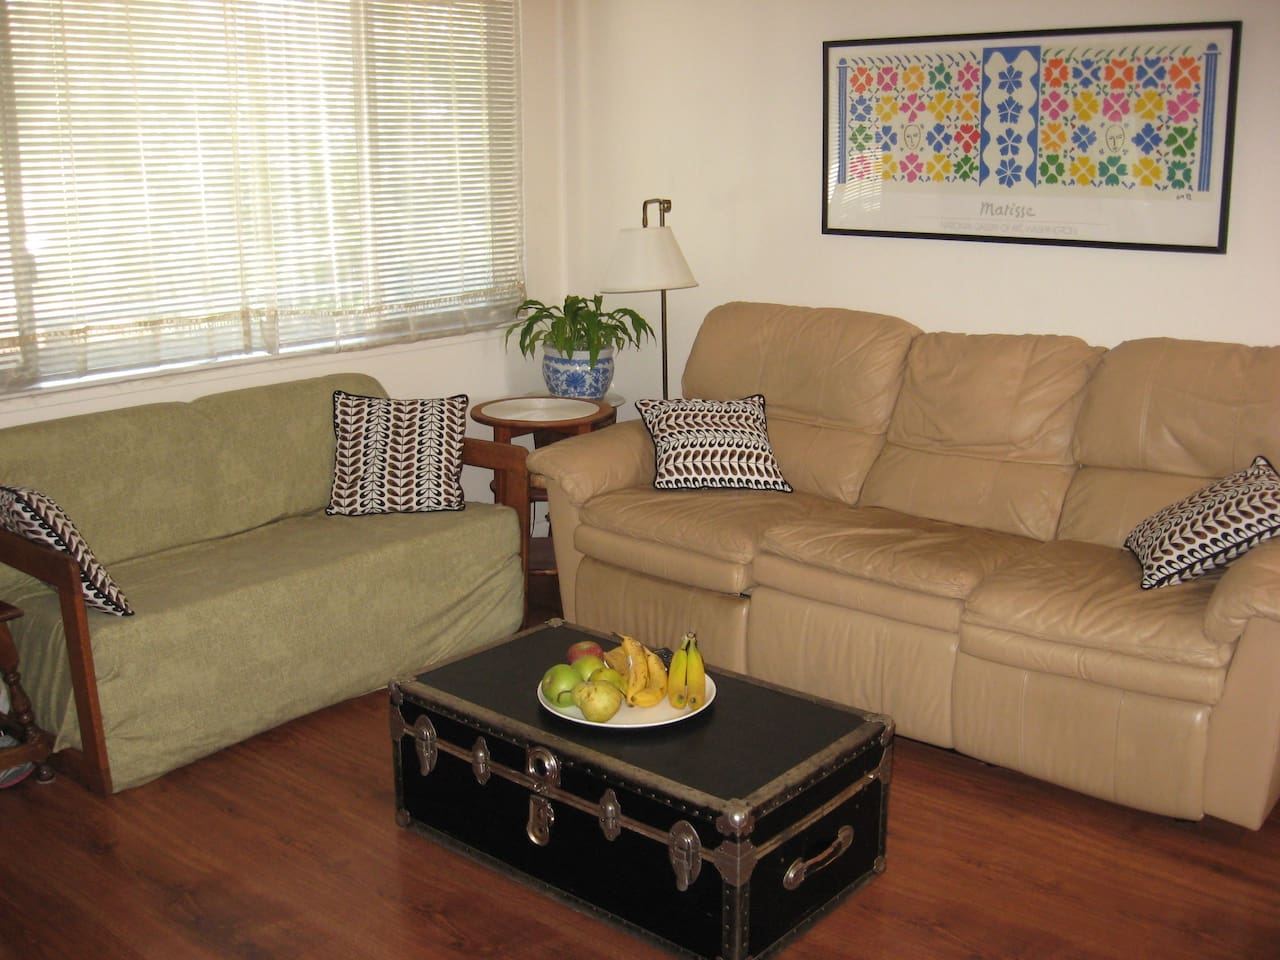 The living room. The small couch folds out to a double bed.